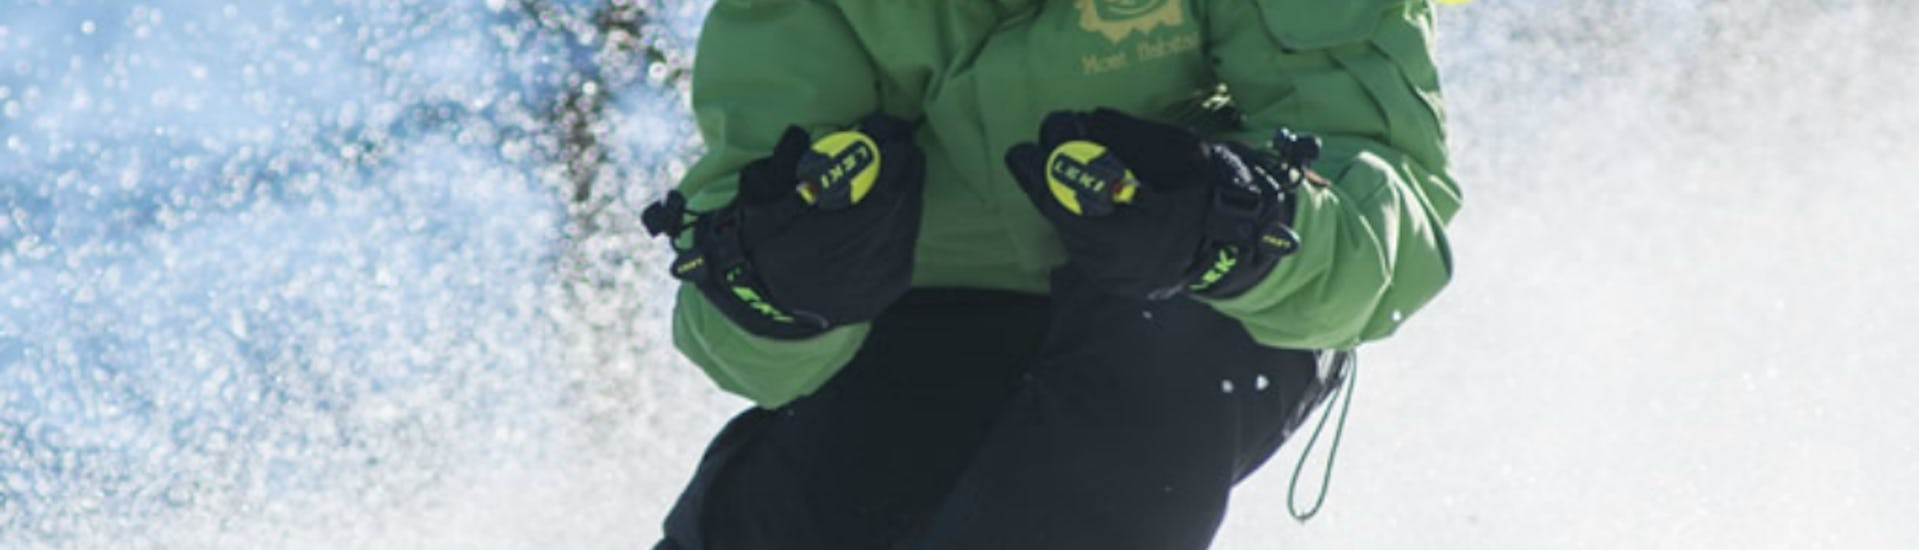 """Ski Lessons """"Winter Camp"""" (12-17 years) - All Levels"""